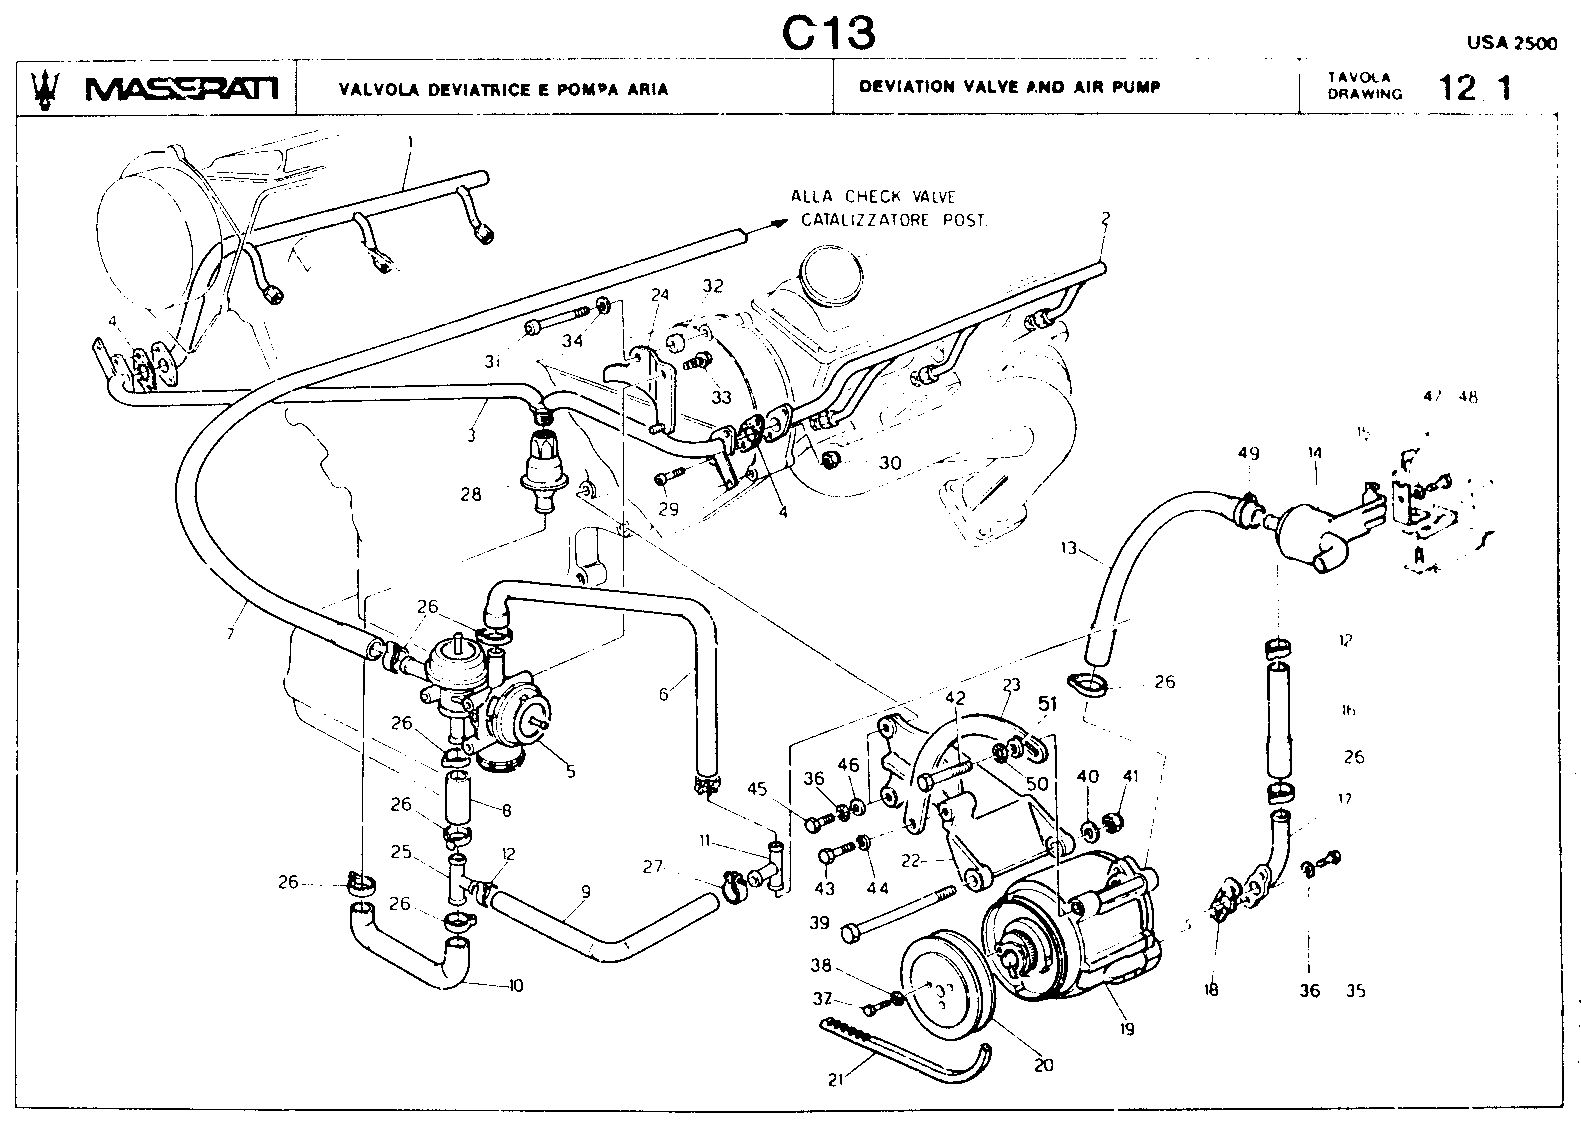 Maserati Wiring Diagrams moreover Maserati Suspension Diagram together with Seat Belts 21467 in addition Break Servo System 52251 together with Exhausts. on maserati shamal